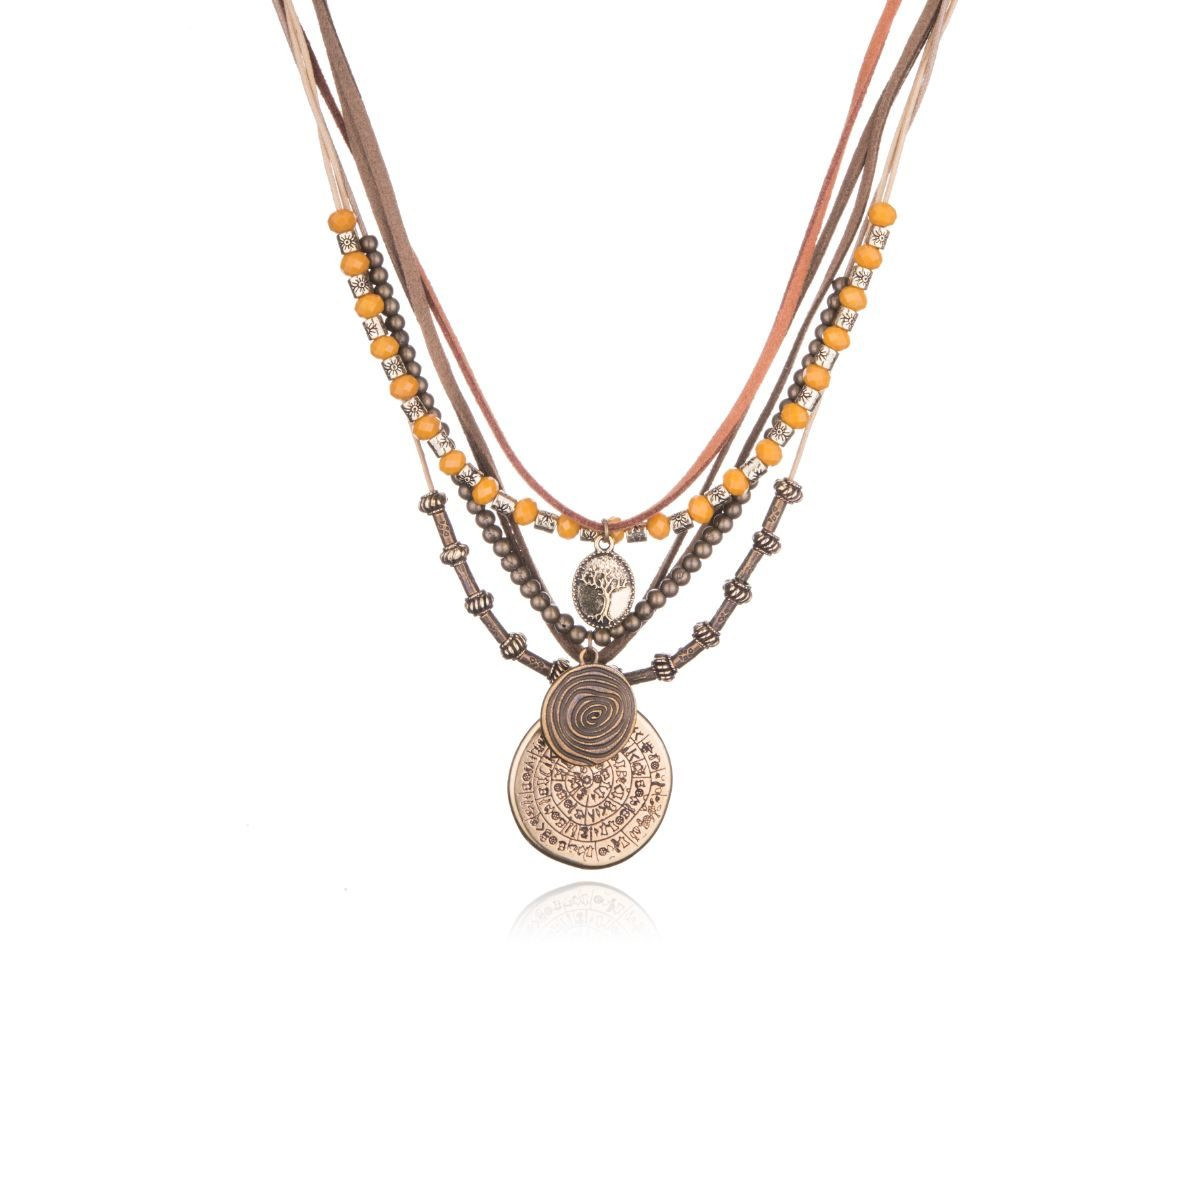 Buenos Aires short necklace with five different straps from which various medallions or beads hang in earth tones